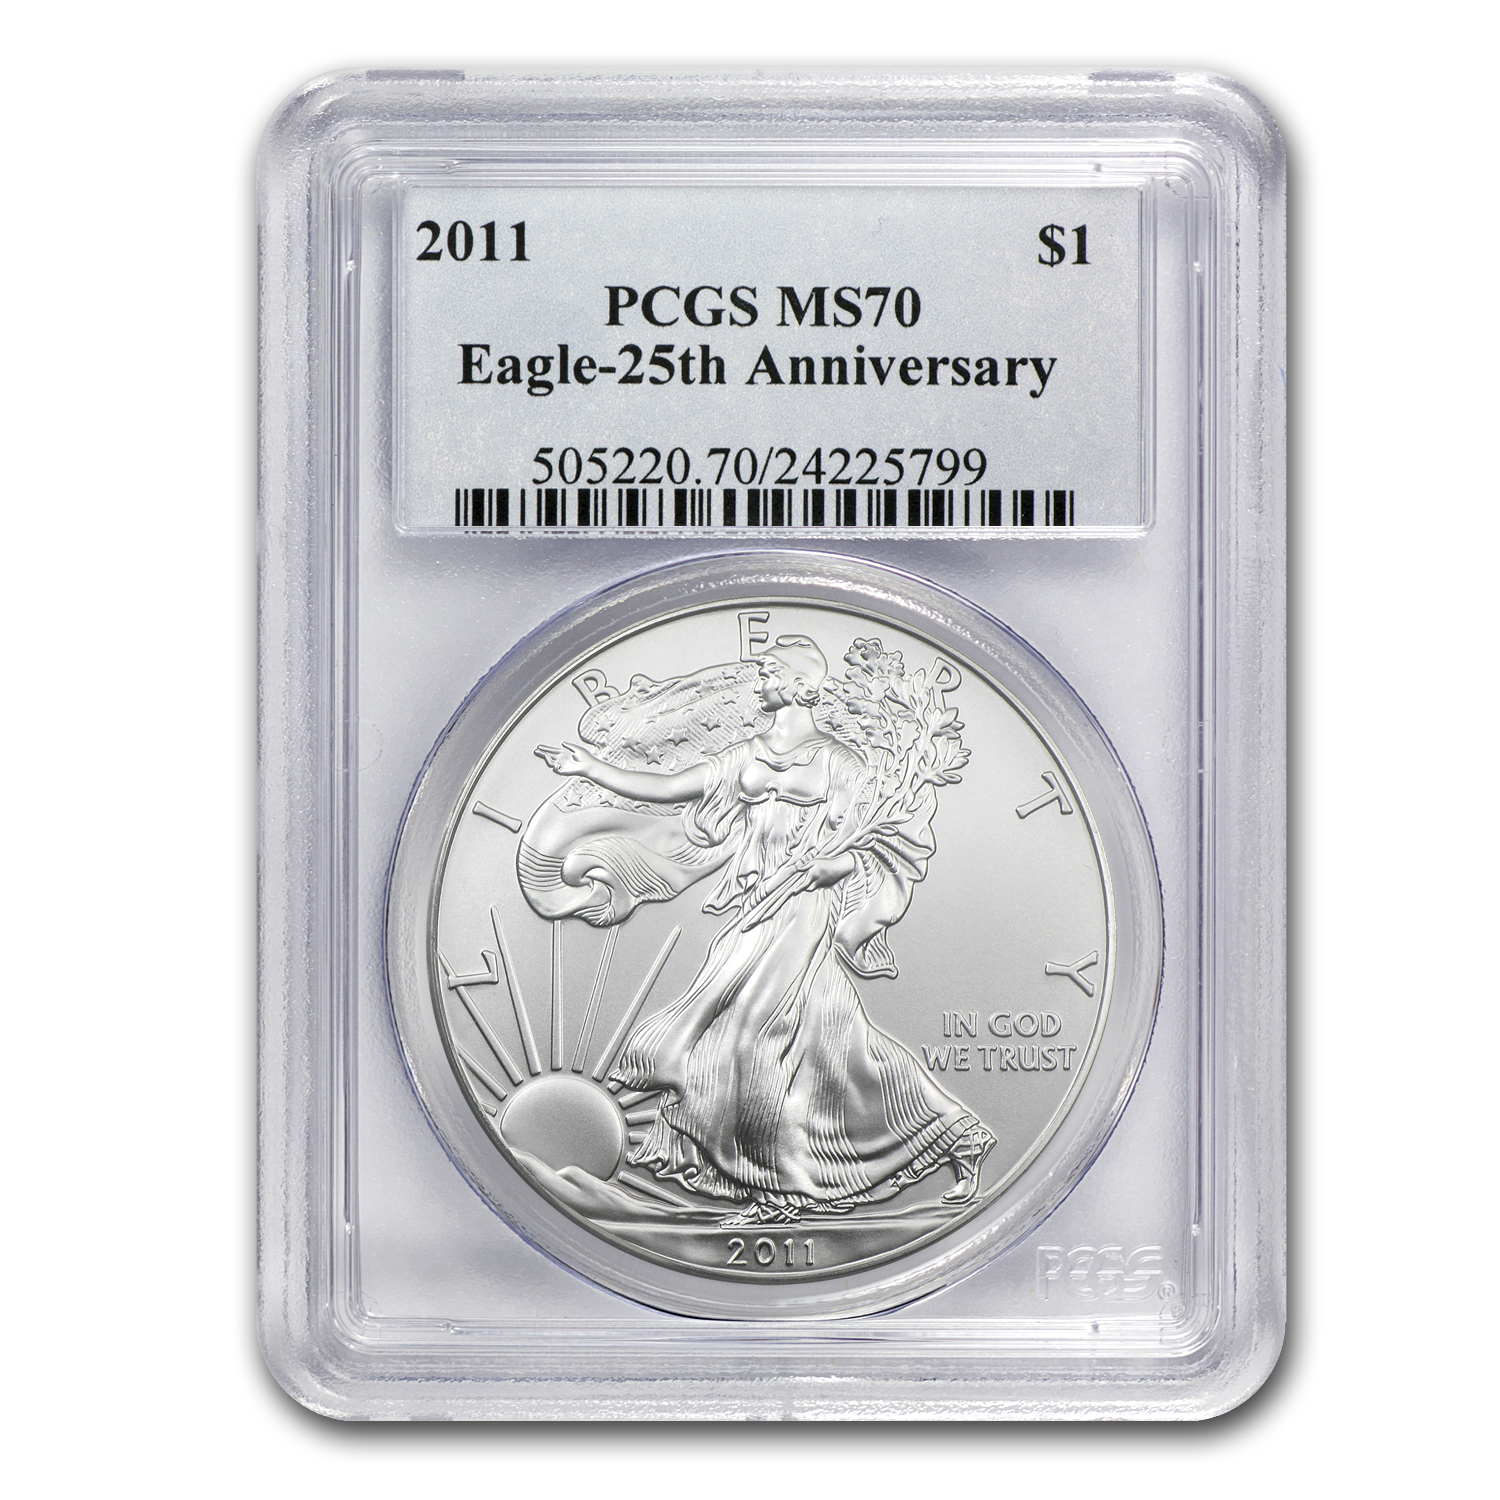 2011 Silver American Eagle - MS-70 PCGS - 25th Anniversary